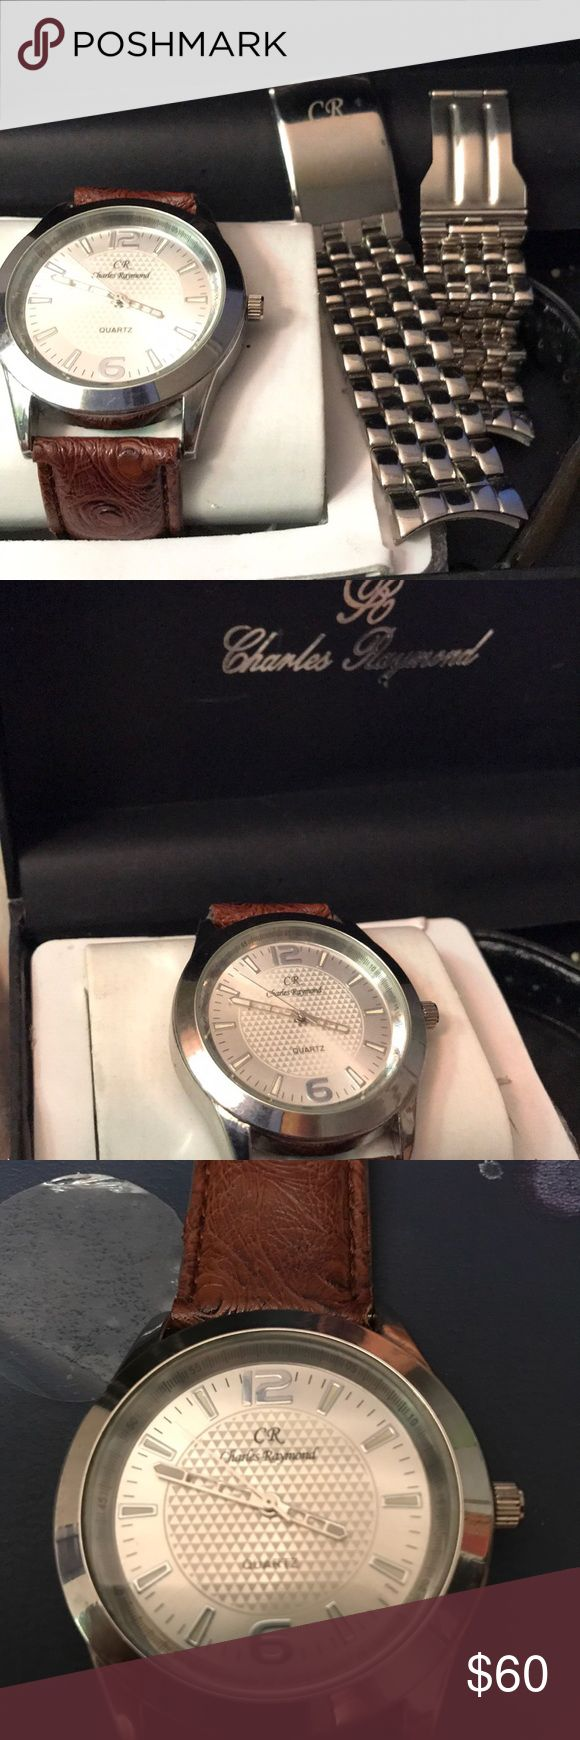 Charles Raymond watch for men Watch for men $40 Accessories Watches